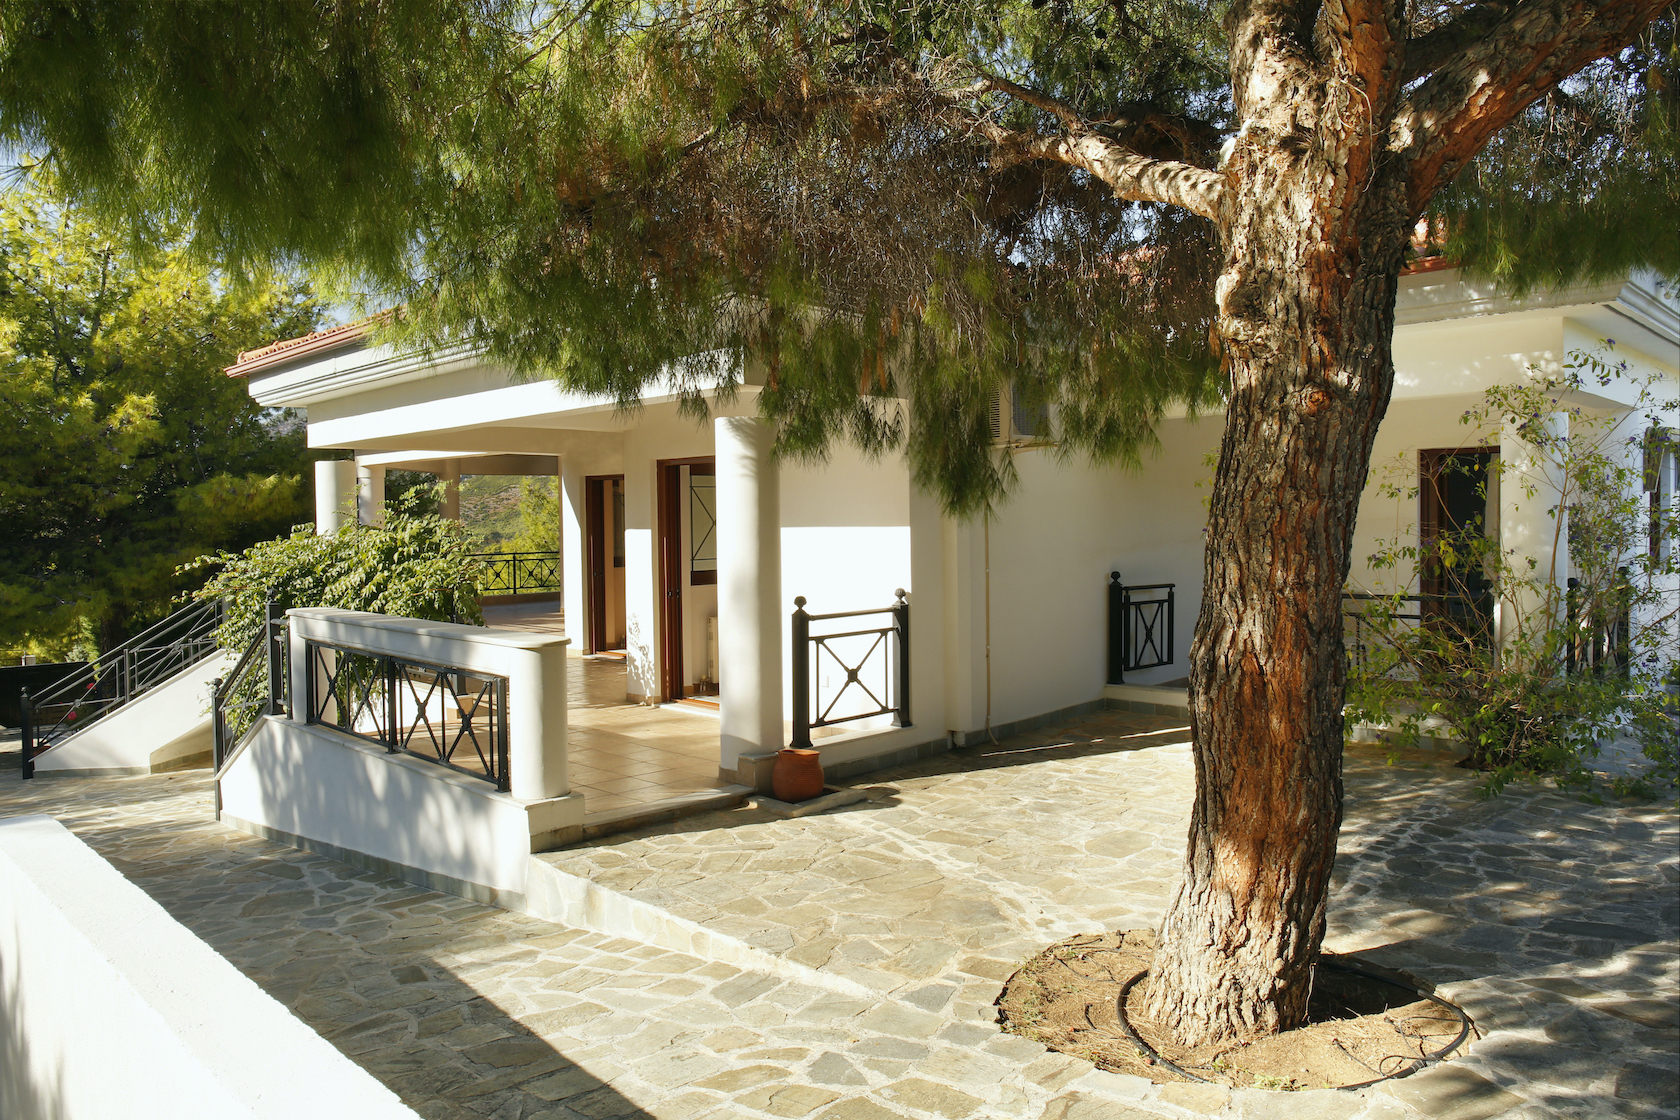 The Loutraki Green Villa side entrance with direct access to the first floor of the villa.